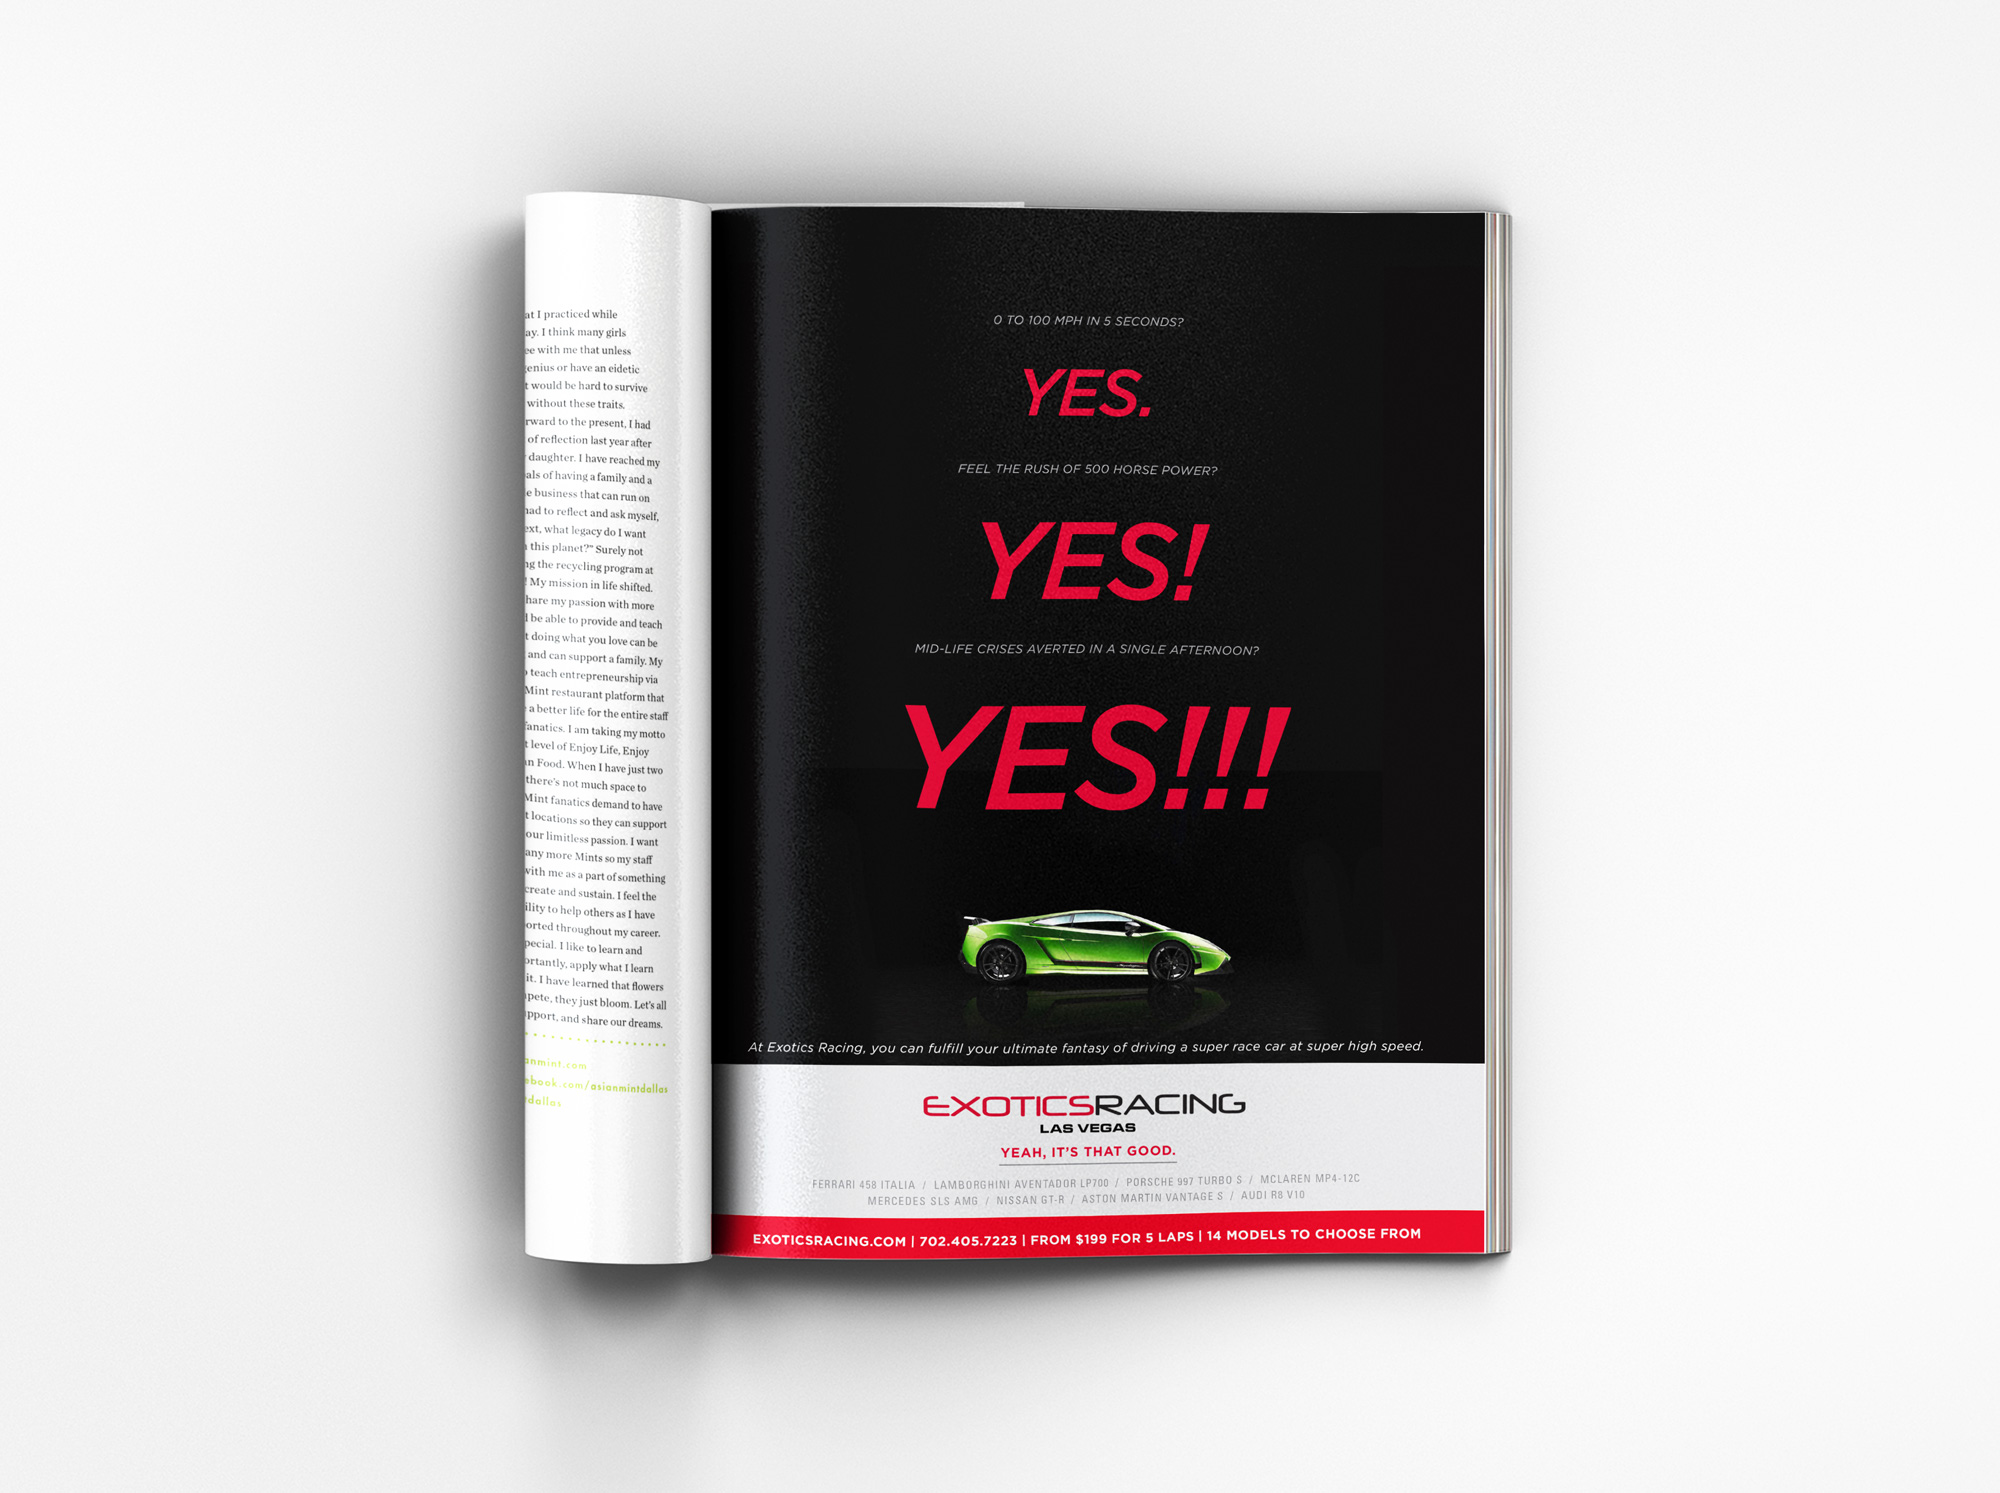 Magazine ad - yes